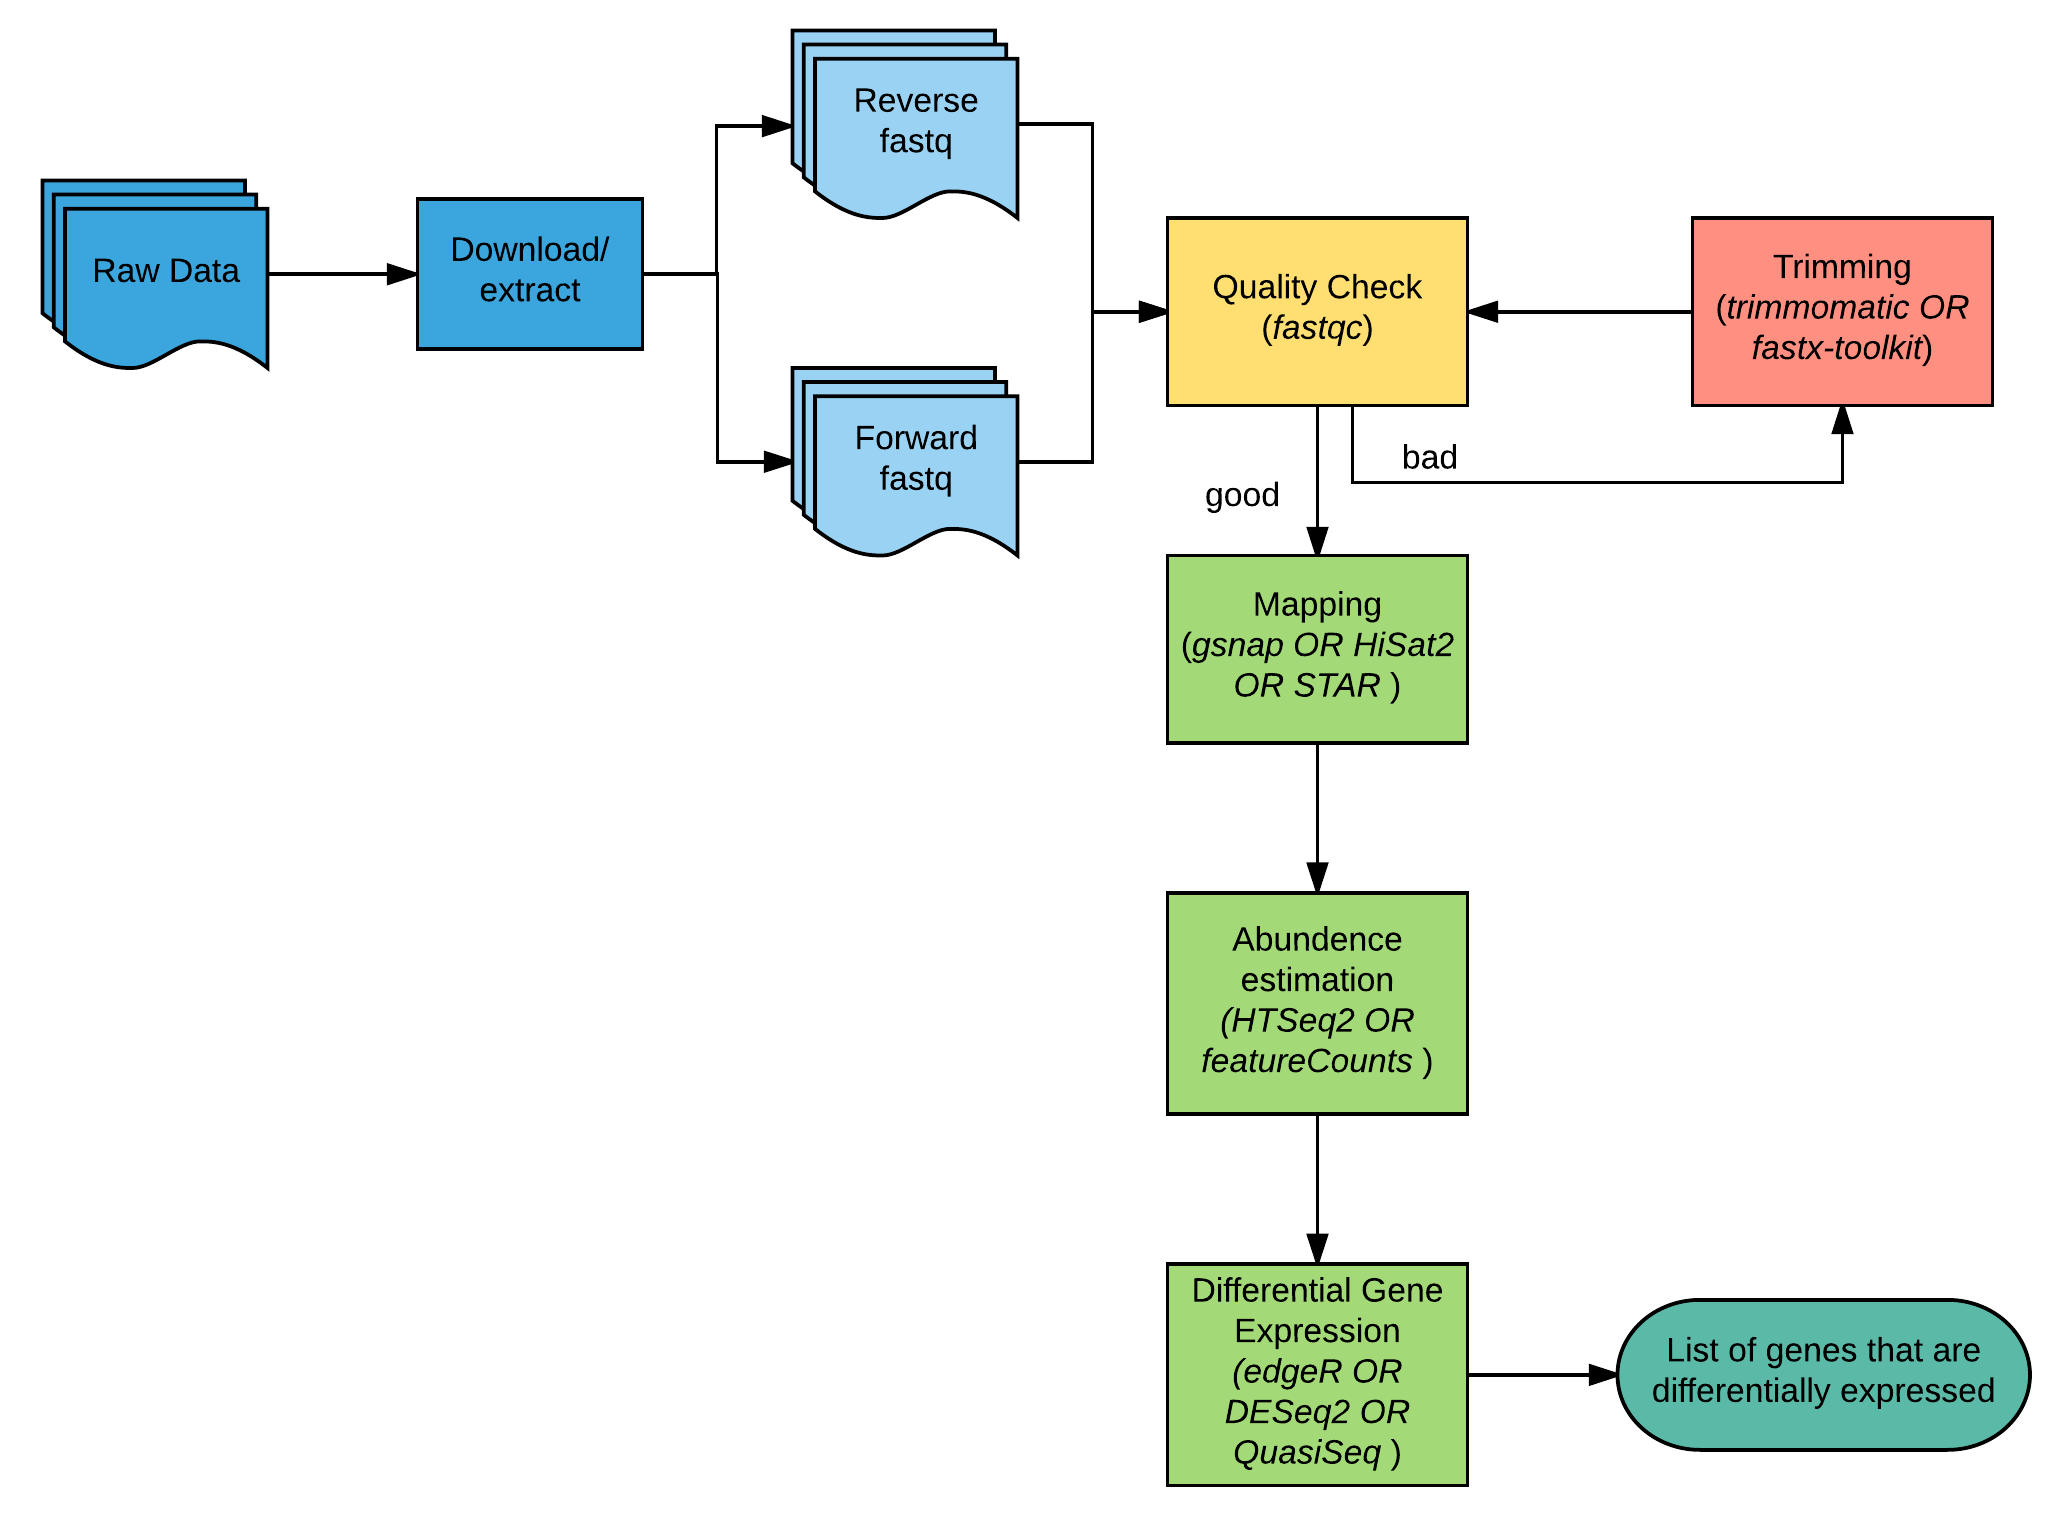 **Figure 1.**: Overview of the RNAseq workflow